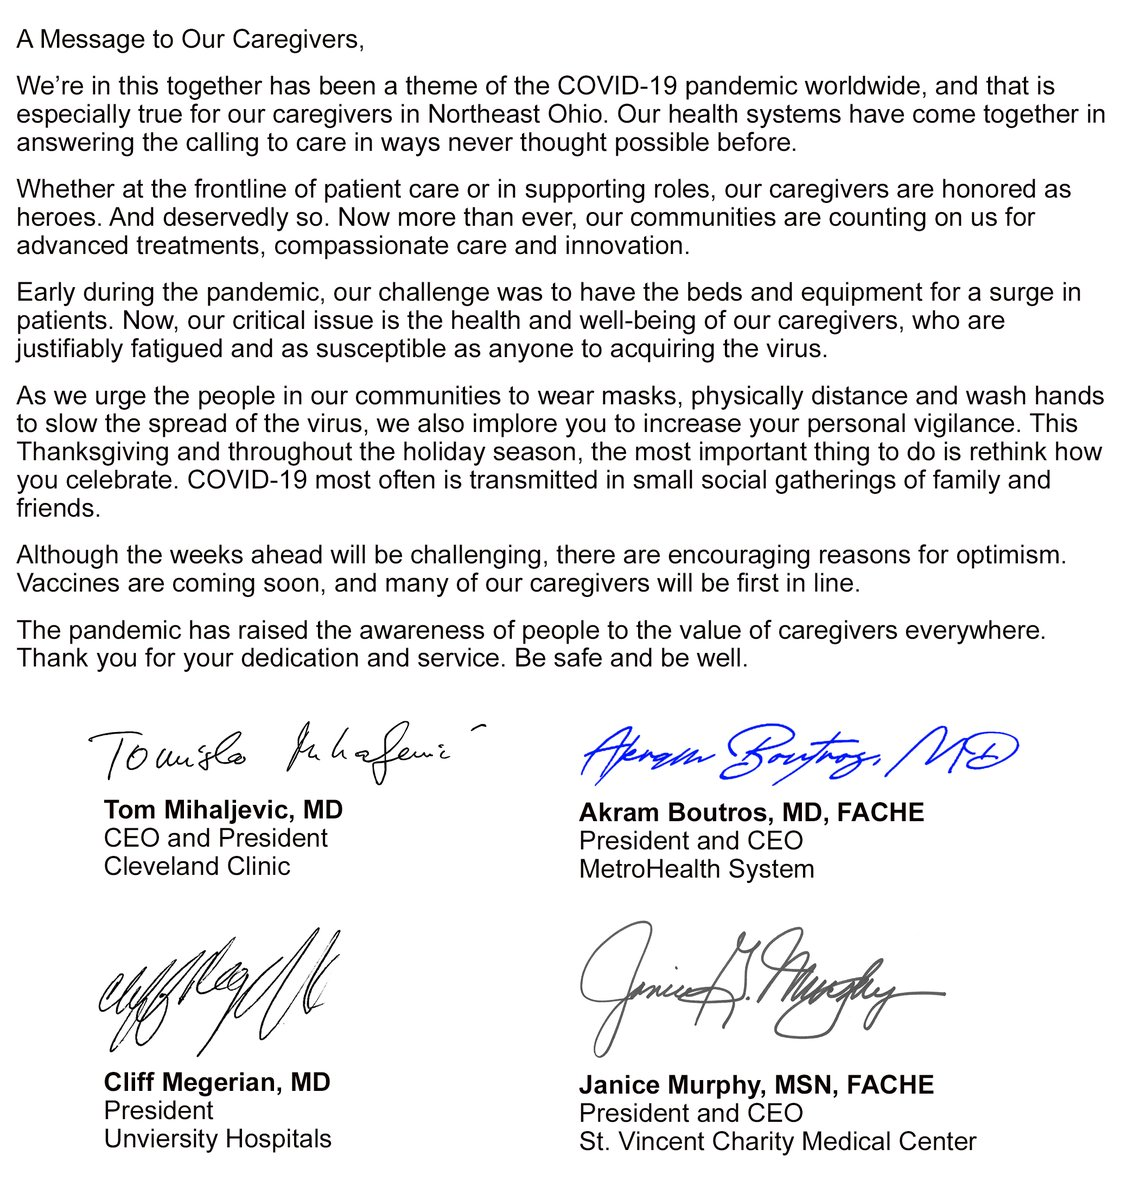 As the holiday season approaches, we join Northeast Ohio health systems in asking everyone to remain vigilant in their efforts to help stop the spread of COVID-19. It's critical to the health and well-being of our communities and our caregivers. https://t.co/2R3UwxYMwH